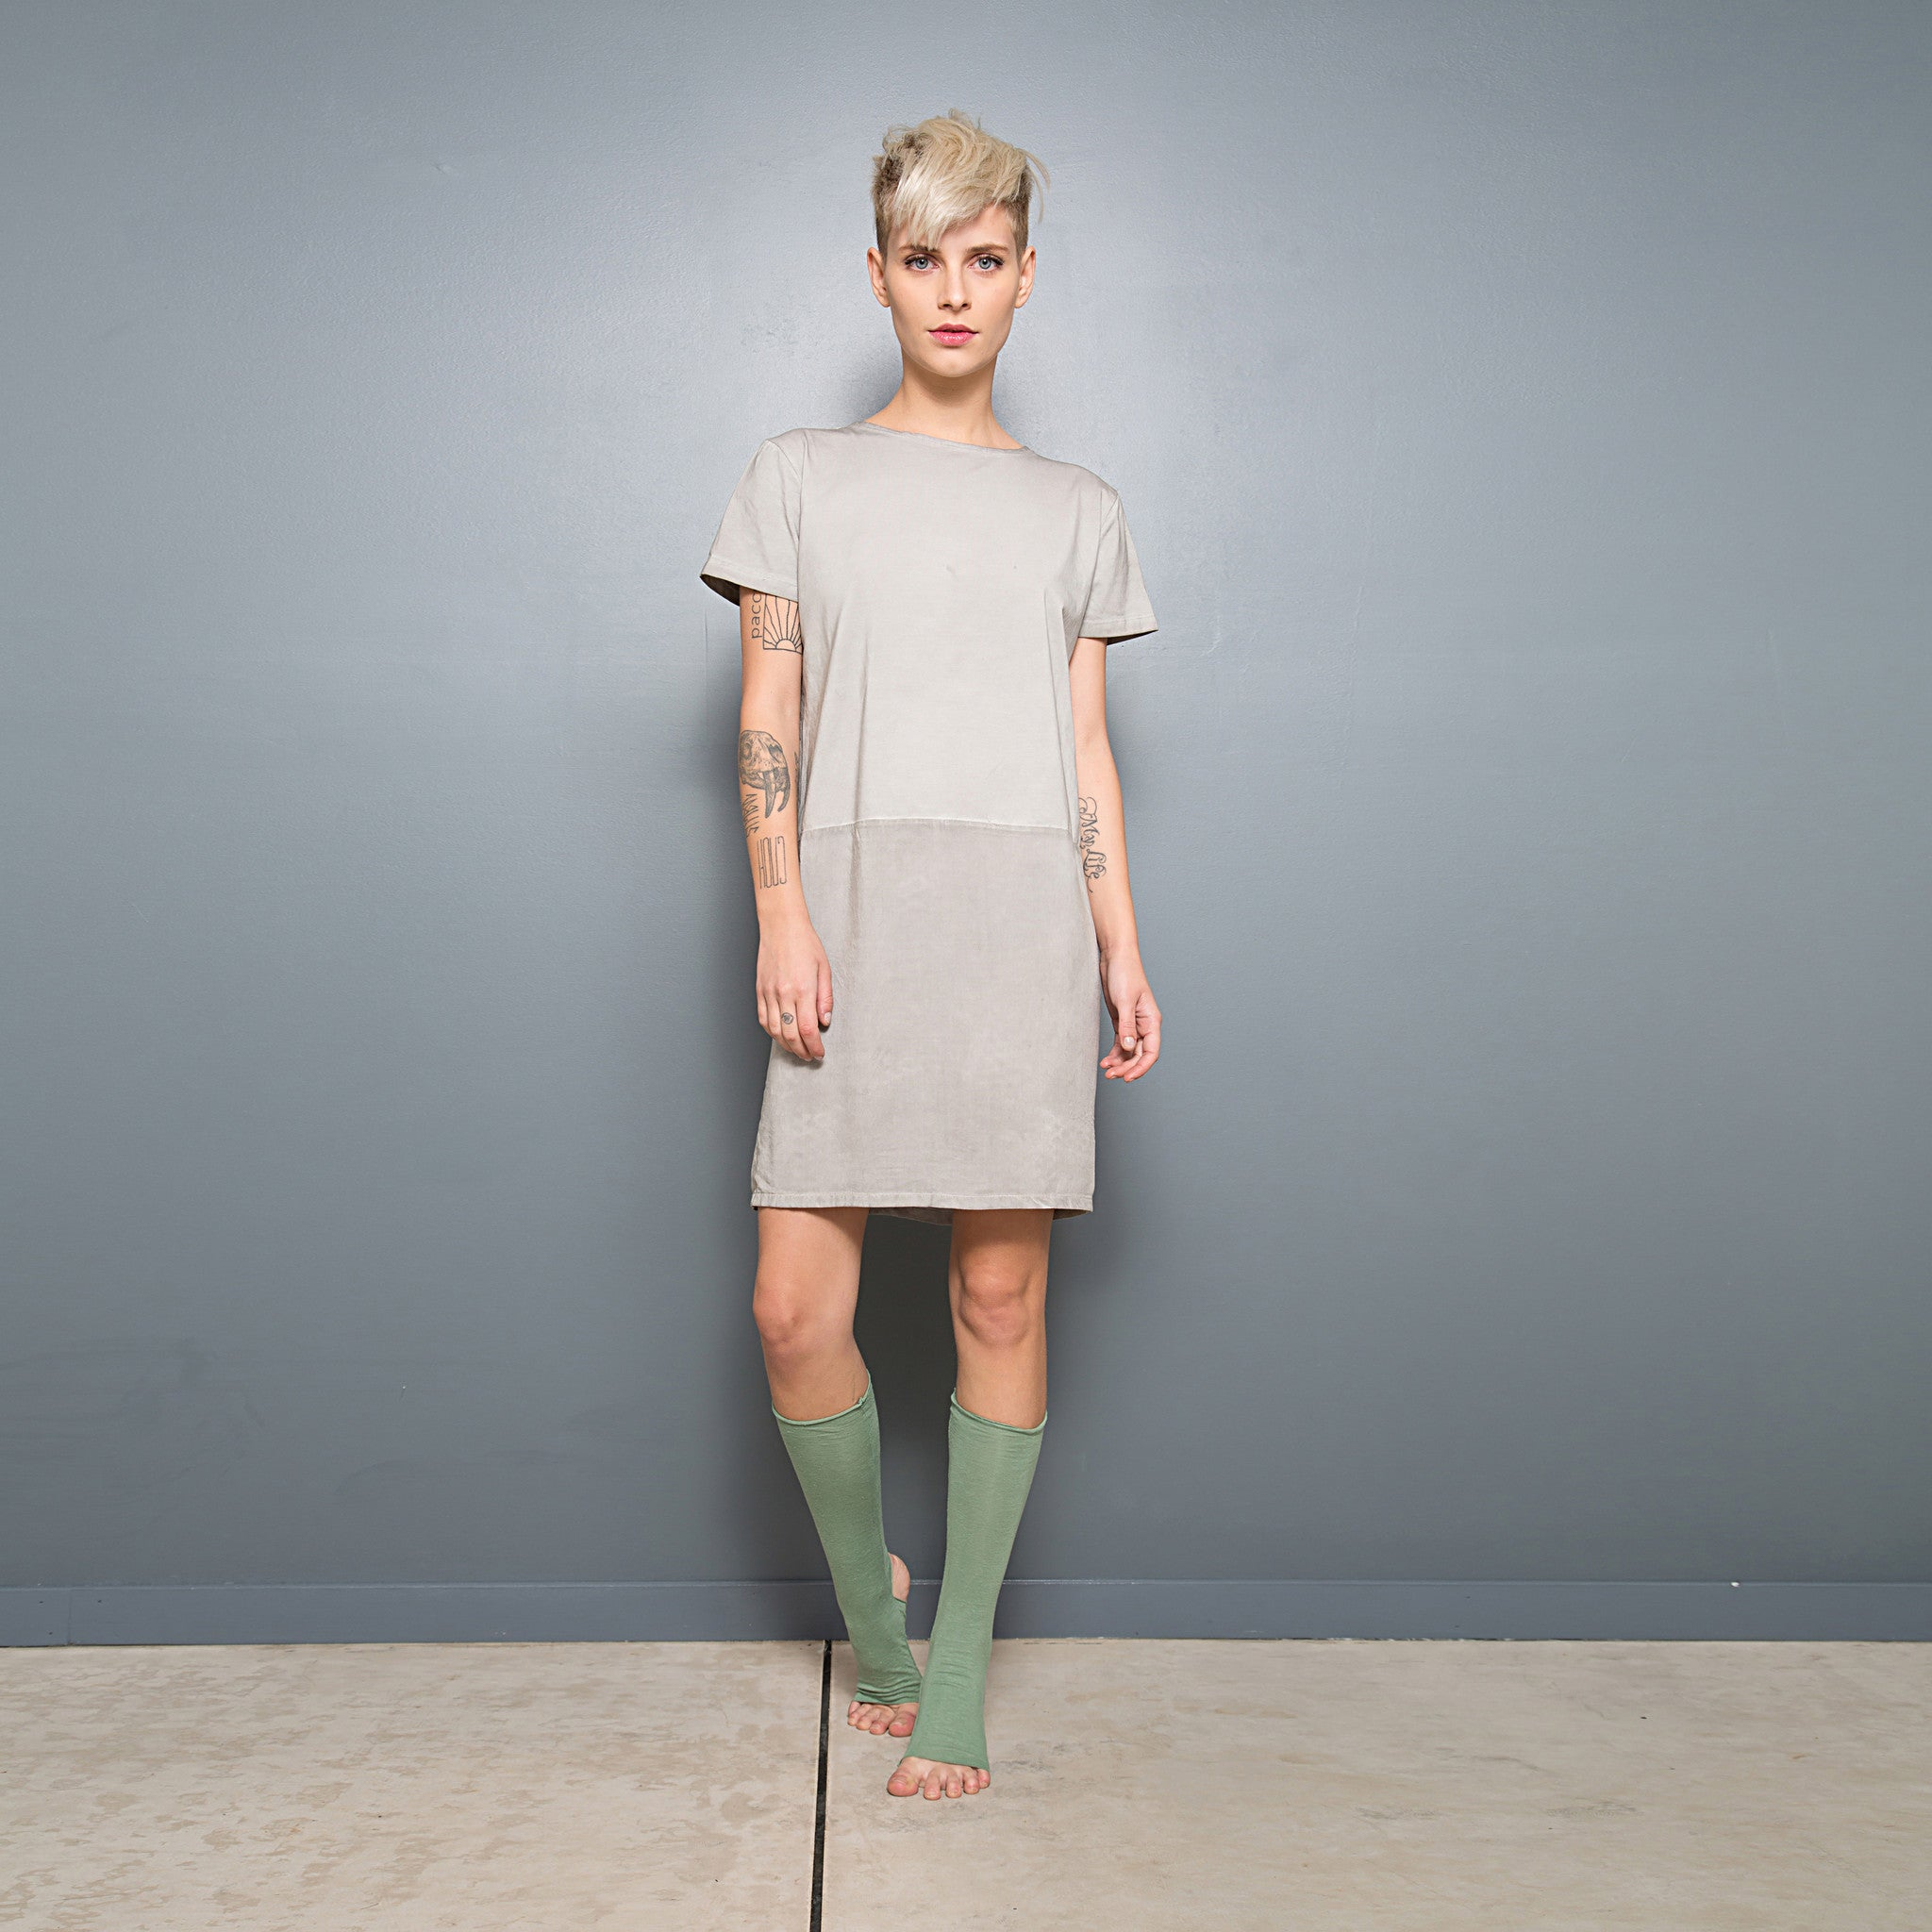 Half jersey half viscose summer T-shirt dress - DuendeFashion  - 2